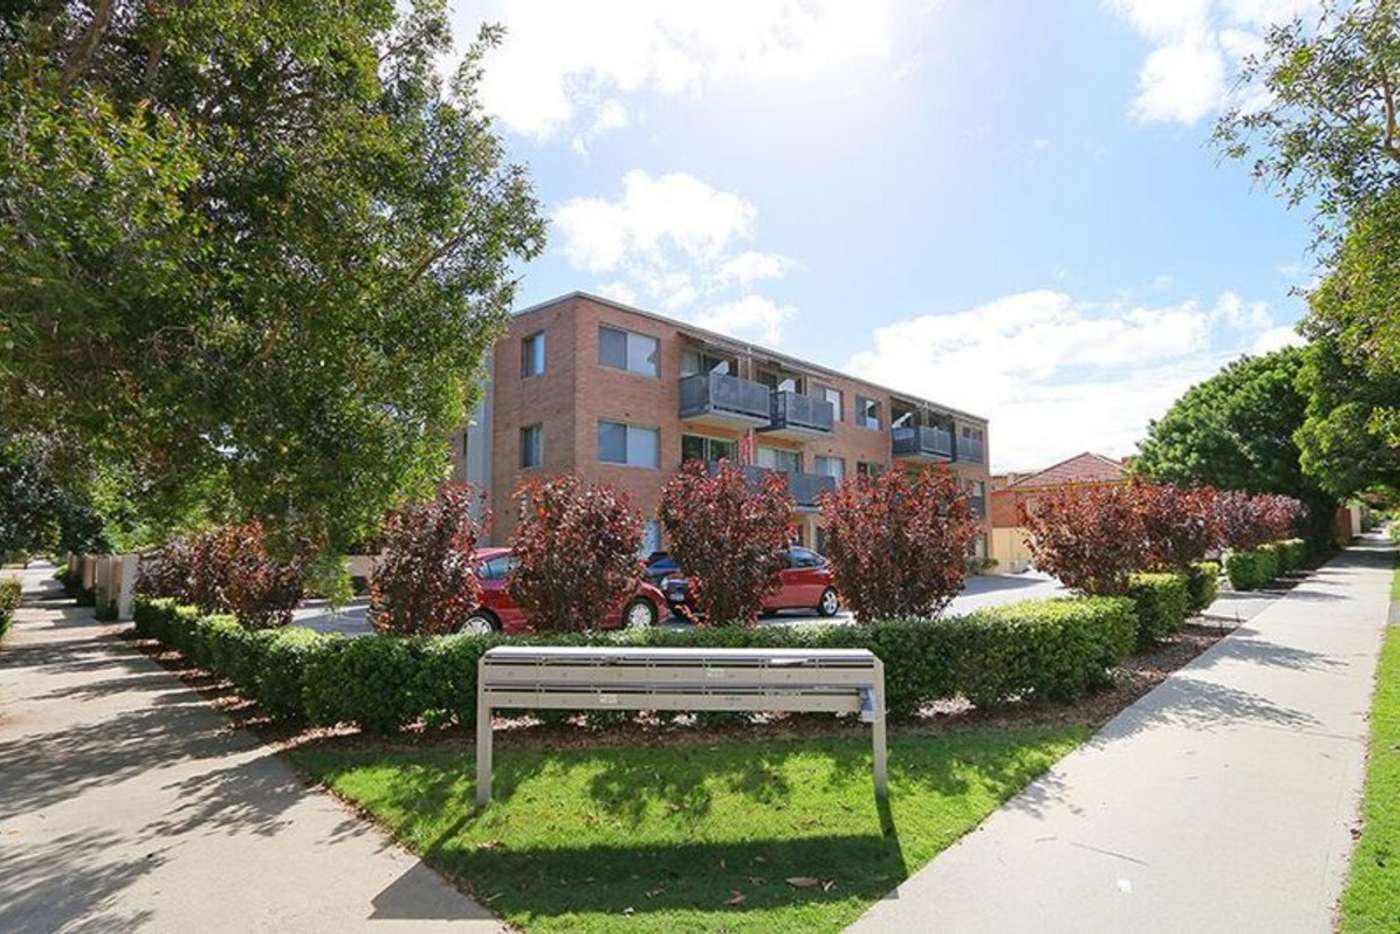 Main view of Homely apartment listing, 11/52 Onslow Road, Shenton Park WA 6008